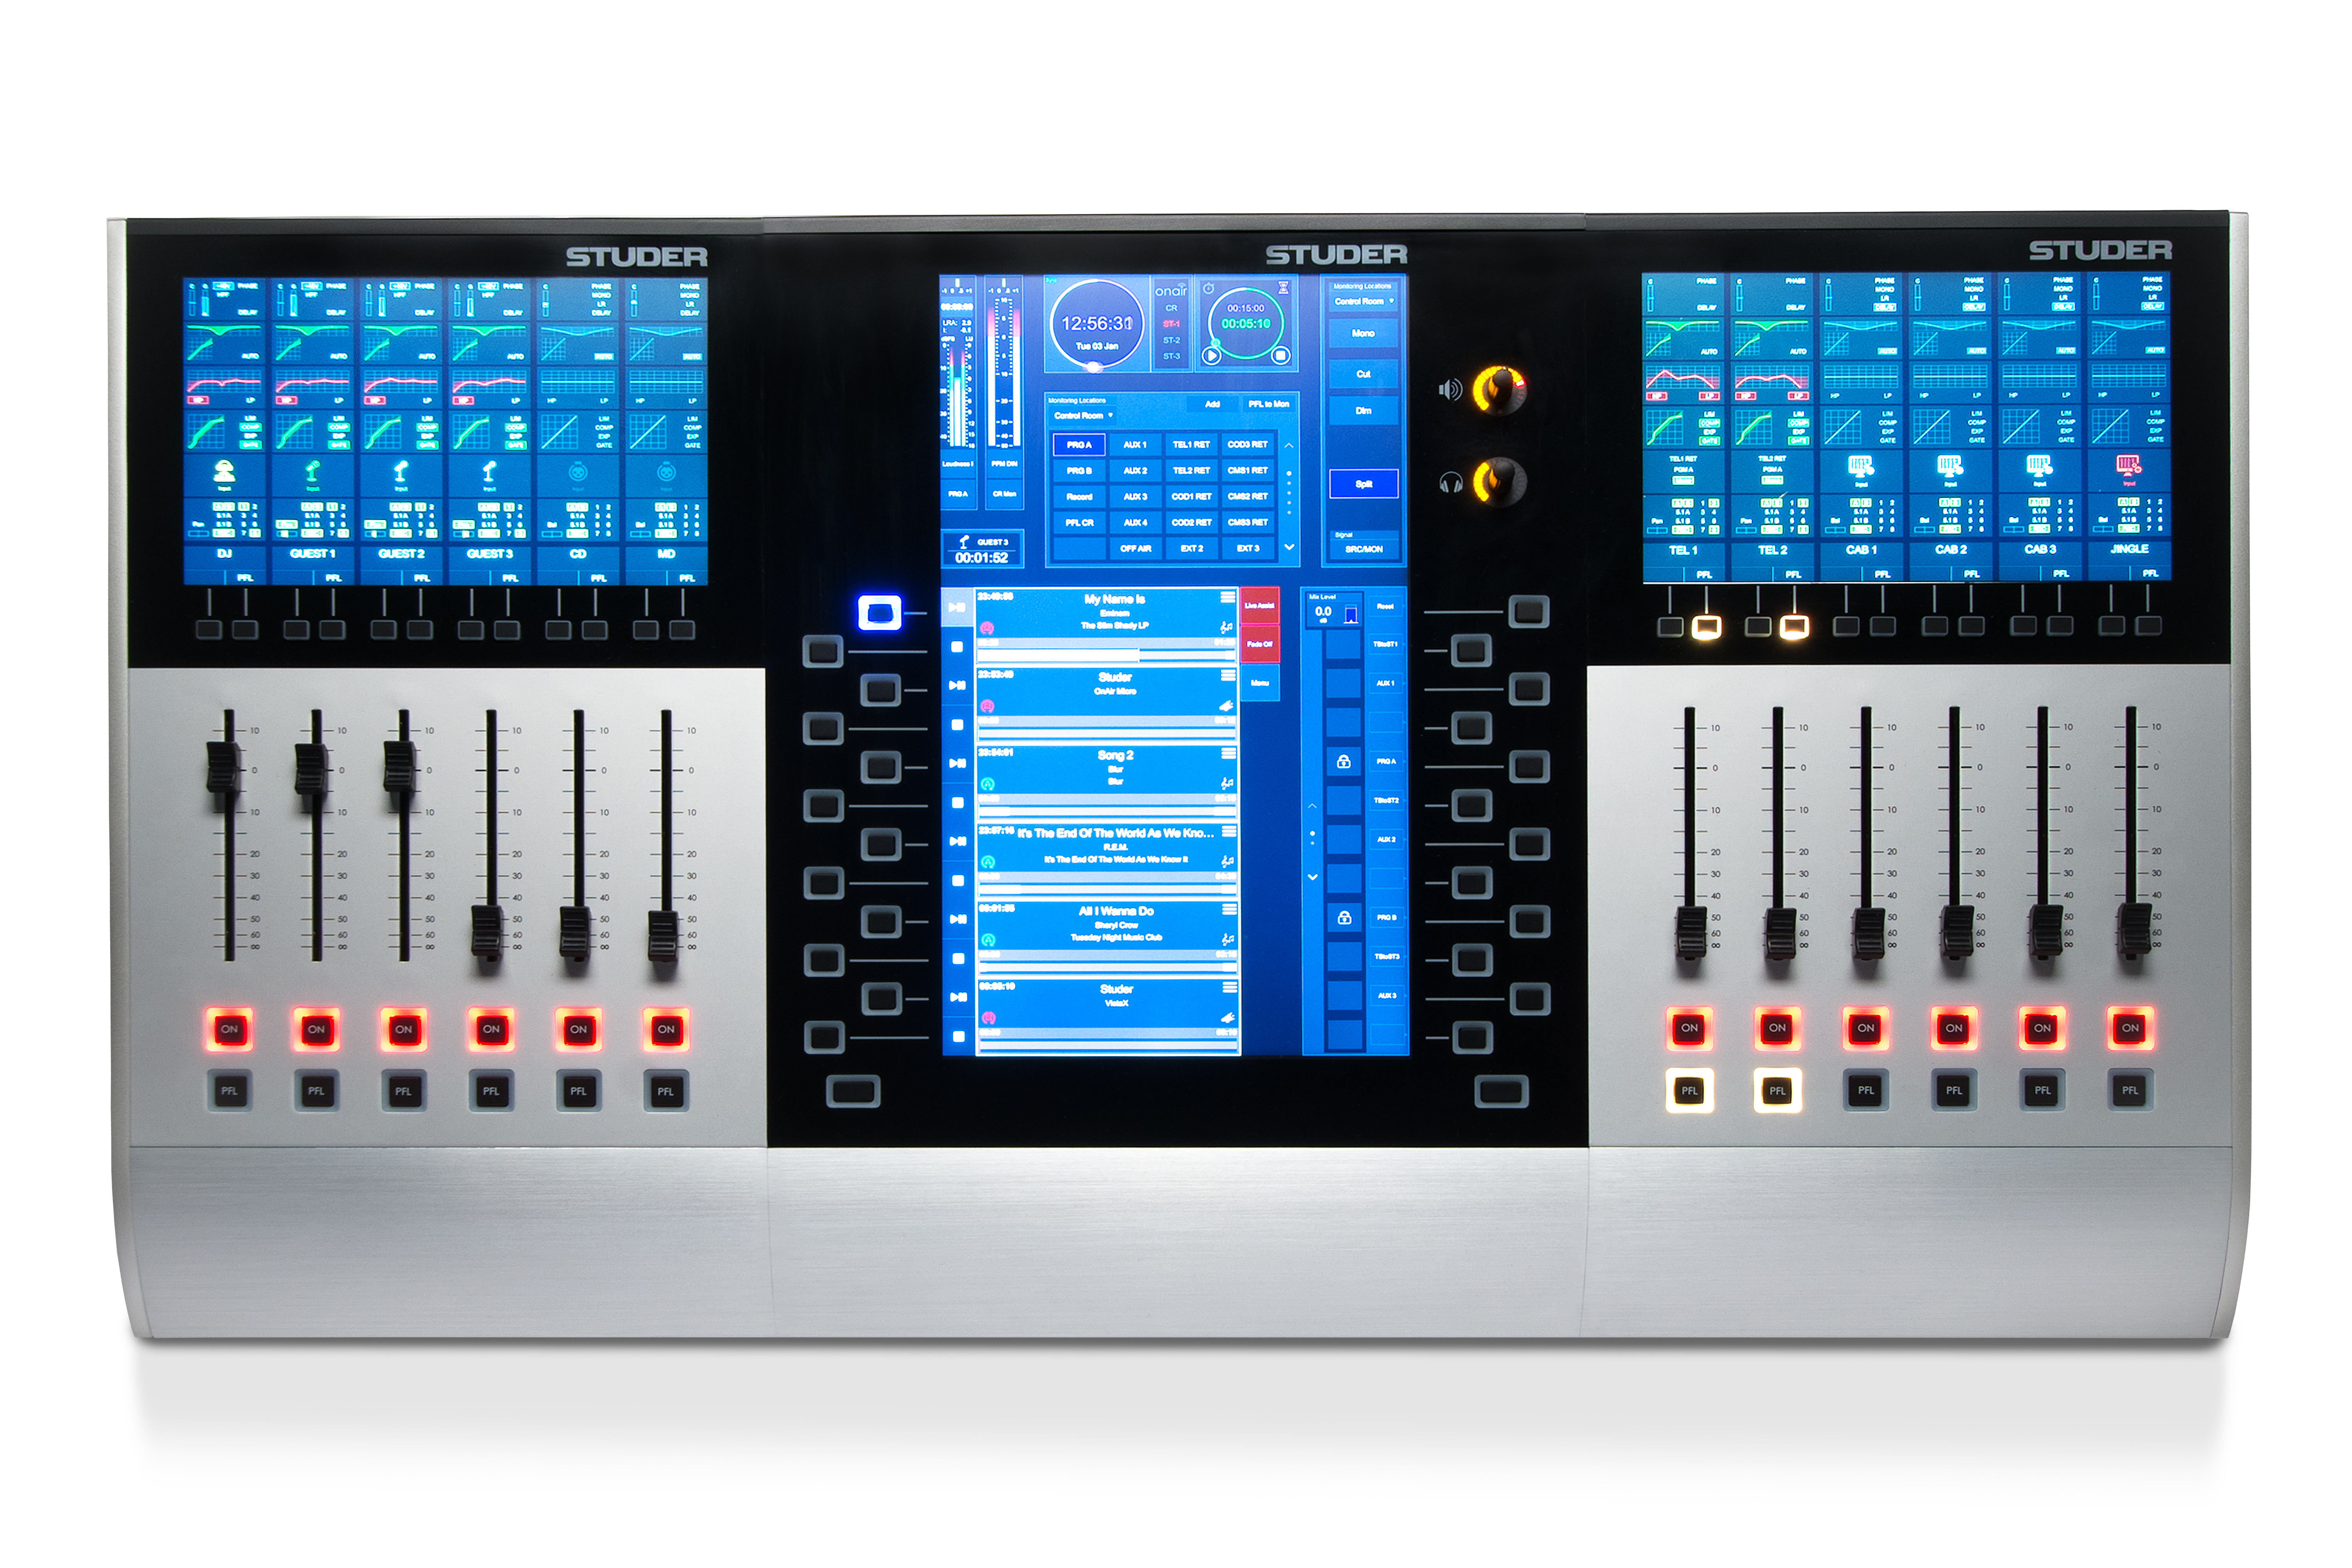 Glacier Series Studer Professional Mixing Consoles Modular Audio Mixer With Multiple Input Channels Productphoto Front Tiny Square